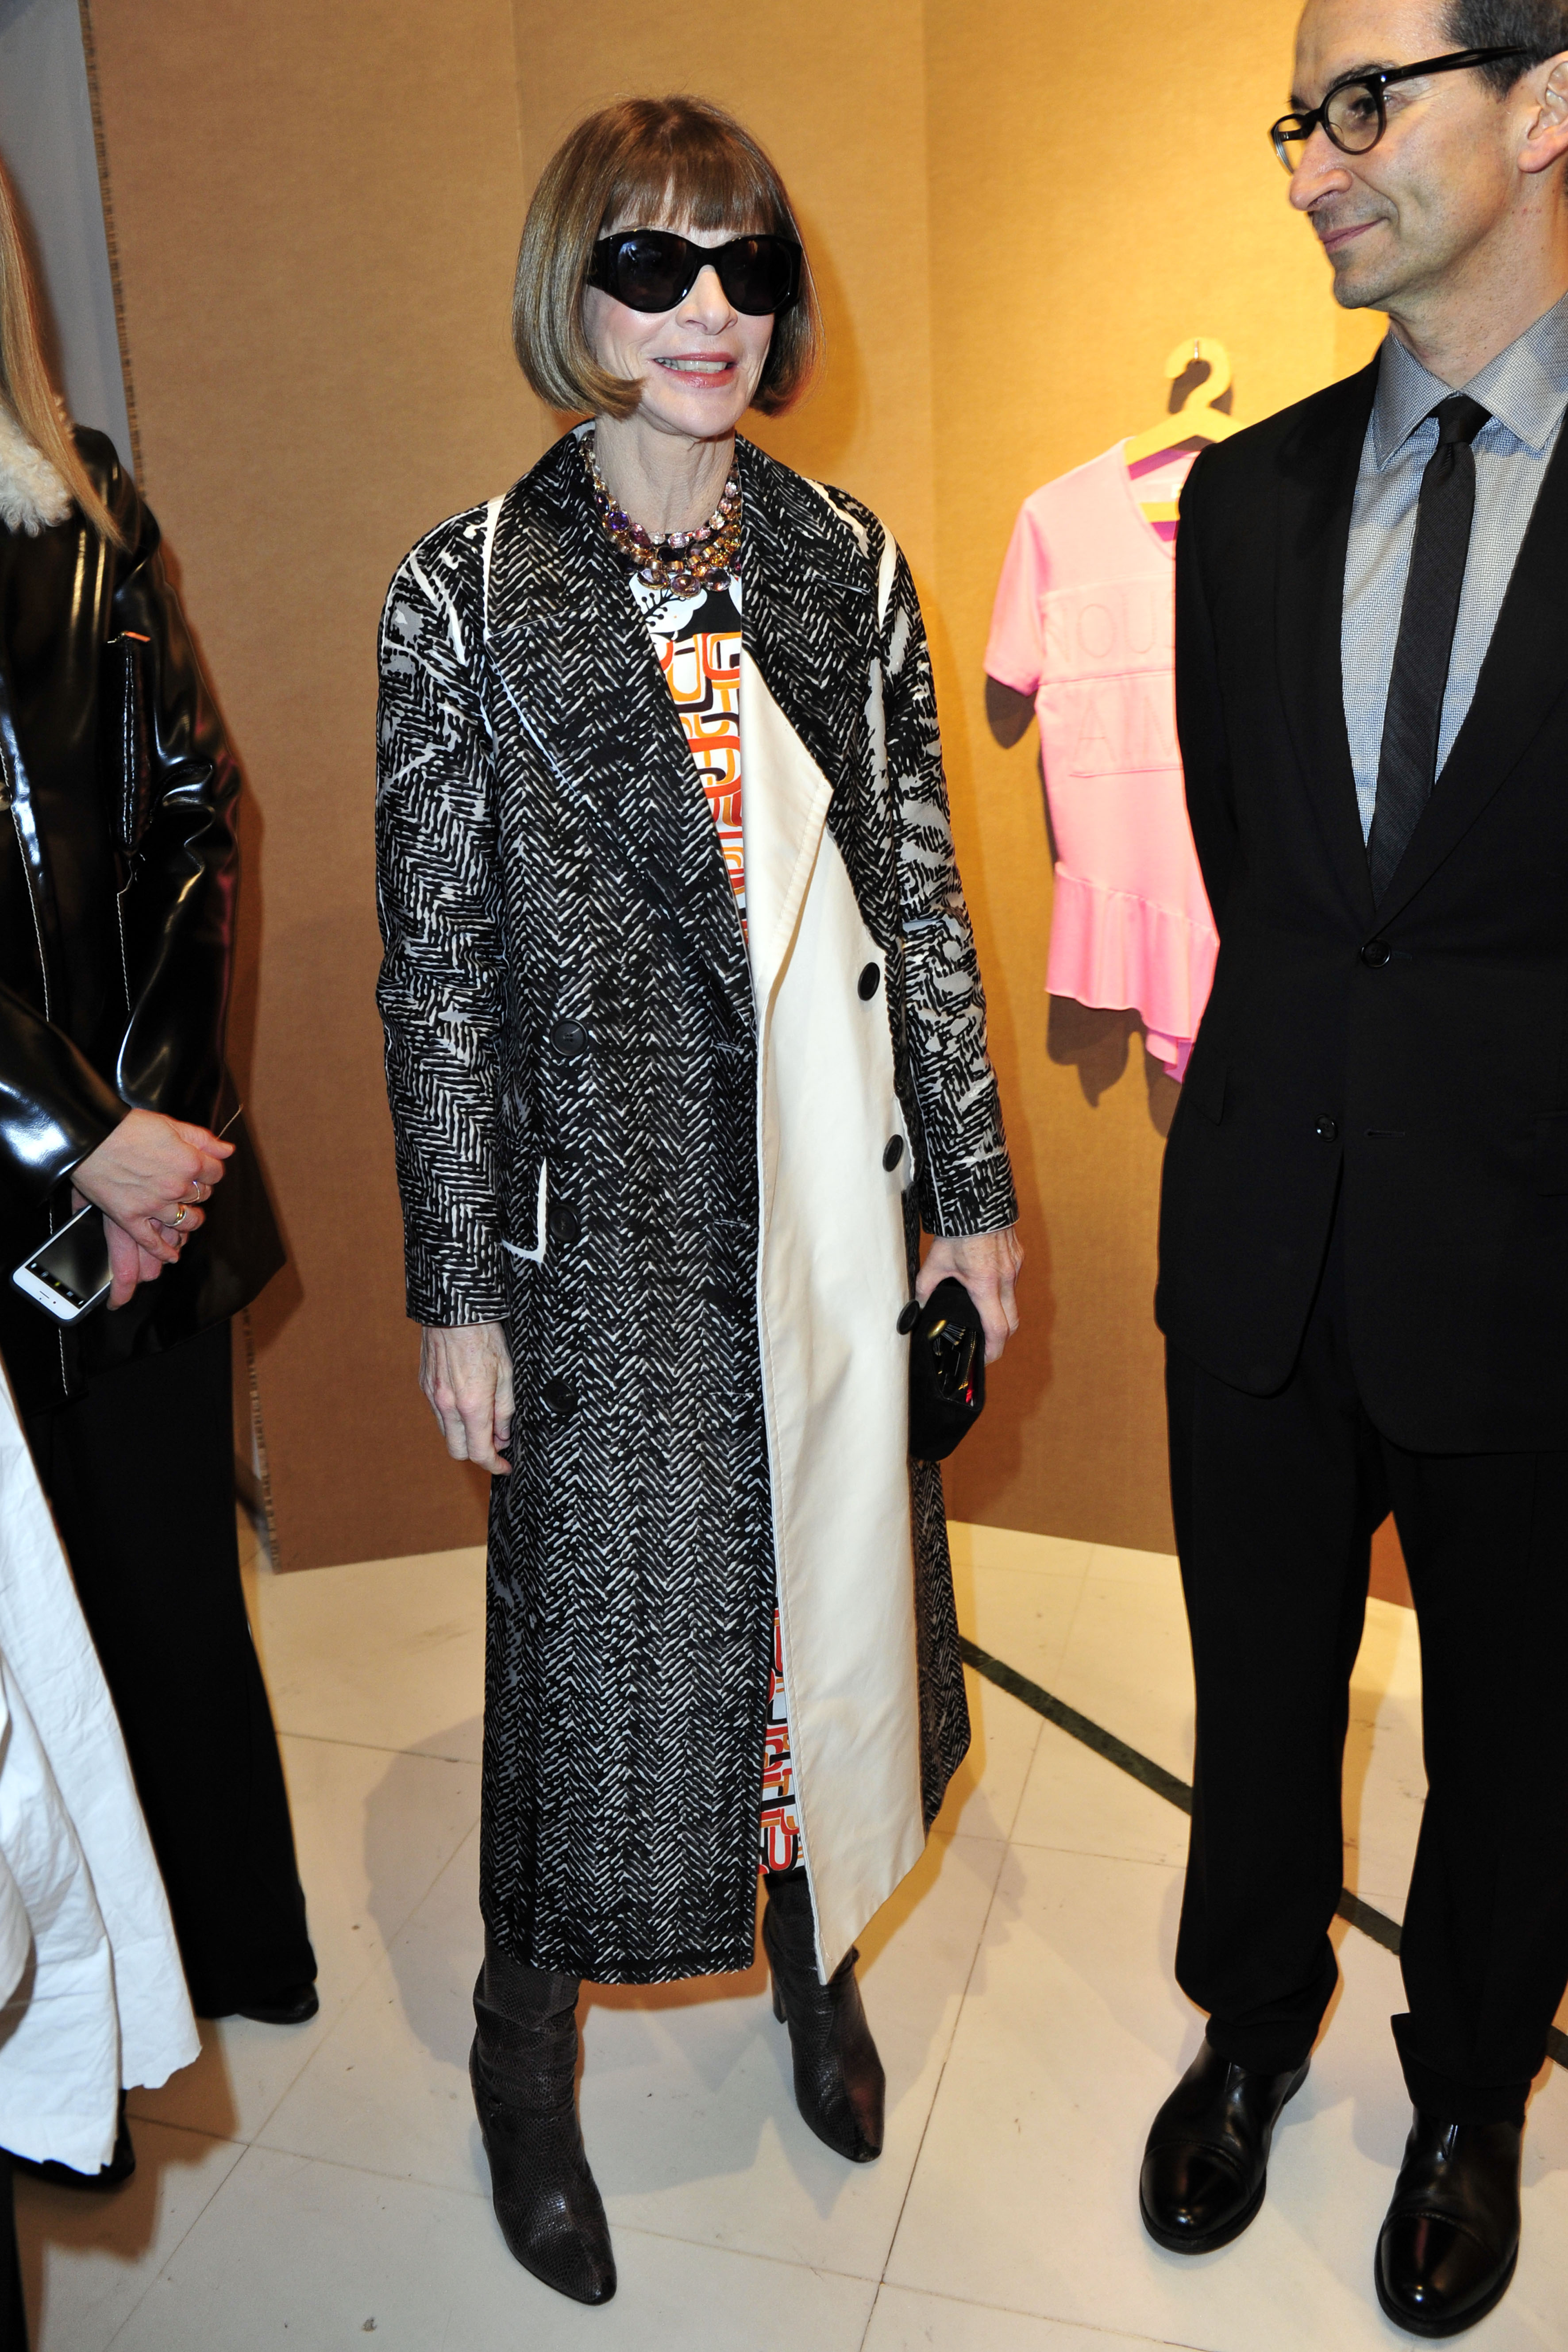 Milan - Anna Wintour during the Milan fashion week  <P> Pictured: Anna Wintour <B>Ref: SPL1656093  230218  </B><BR/> Picture by: Rich / Splash News<BR/> </P><P> <B>Splash News and Pictures</B><BR/> Los Angeles:310-821-2666<BR/> New York:212-619-2666<BR/> London:870-934-2666<BR/> <span id=